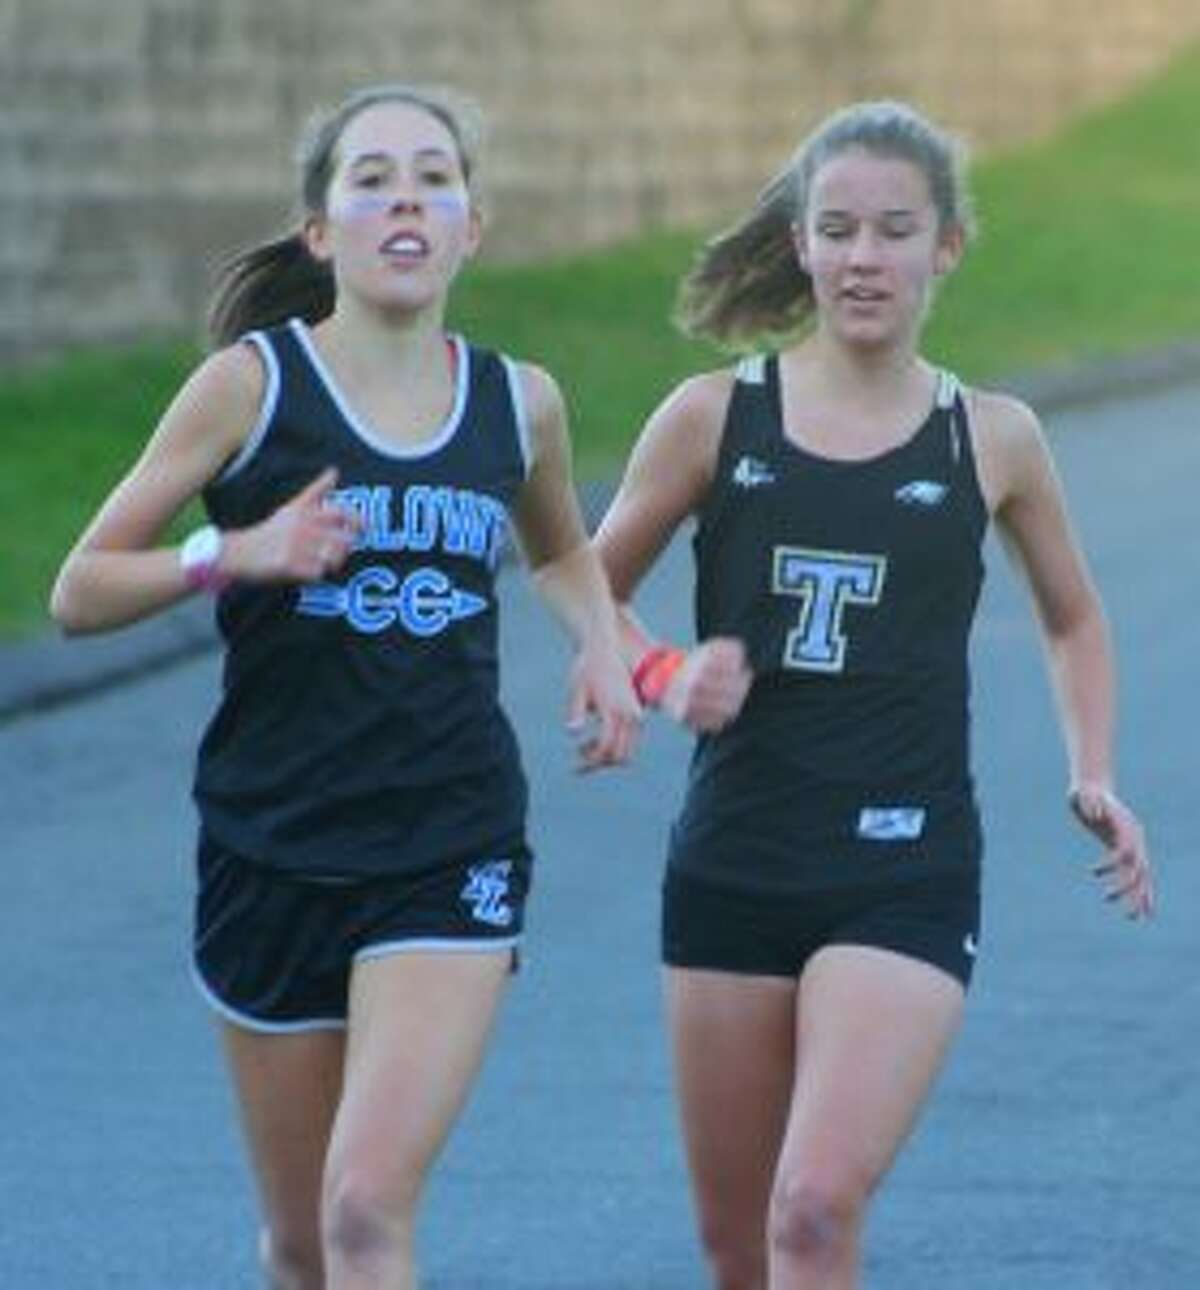 Fairfield Ludlowe's Sarah Leatherwood and Trumbull High's Kate Romanchick run side by side in Monday's meet.